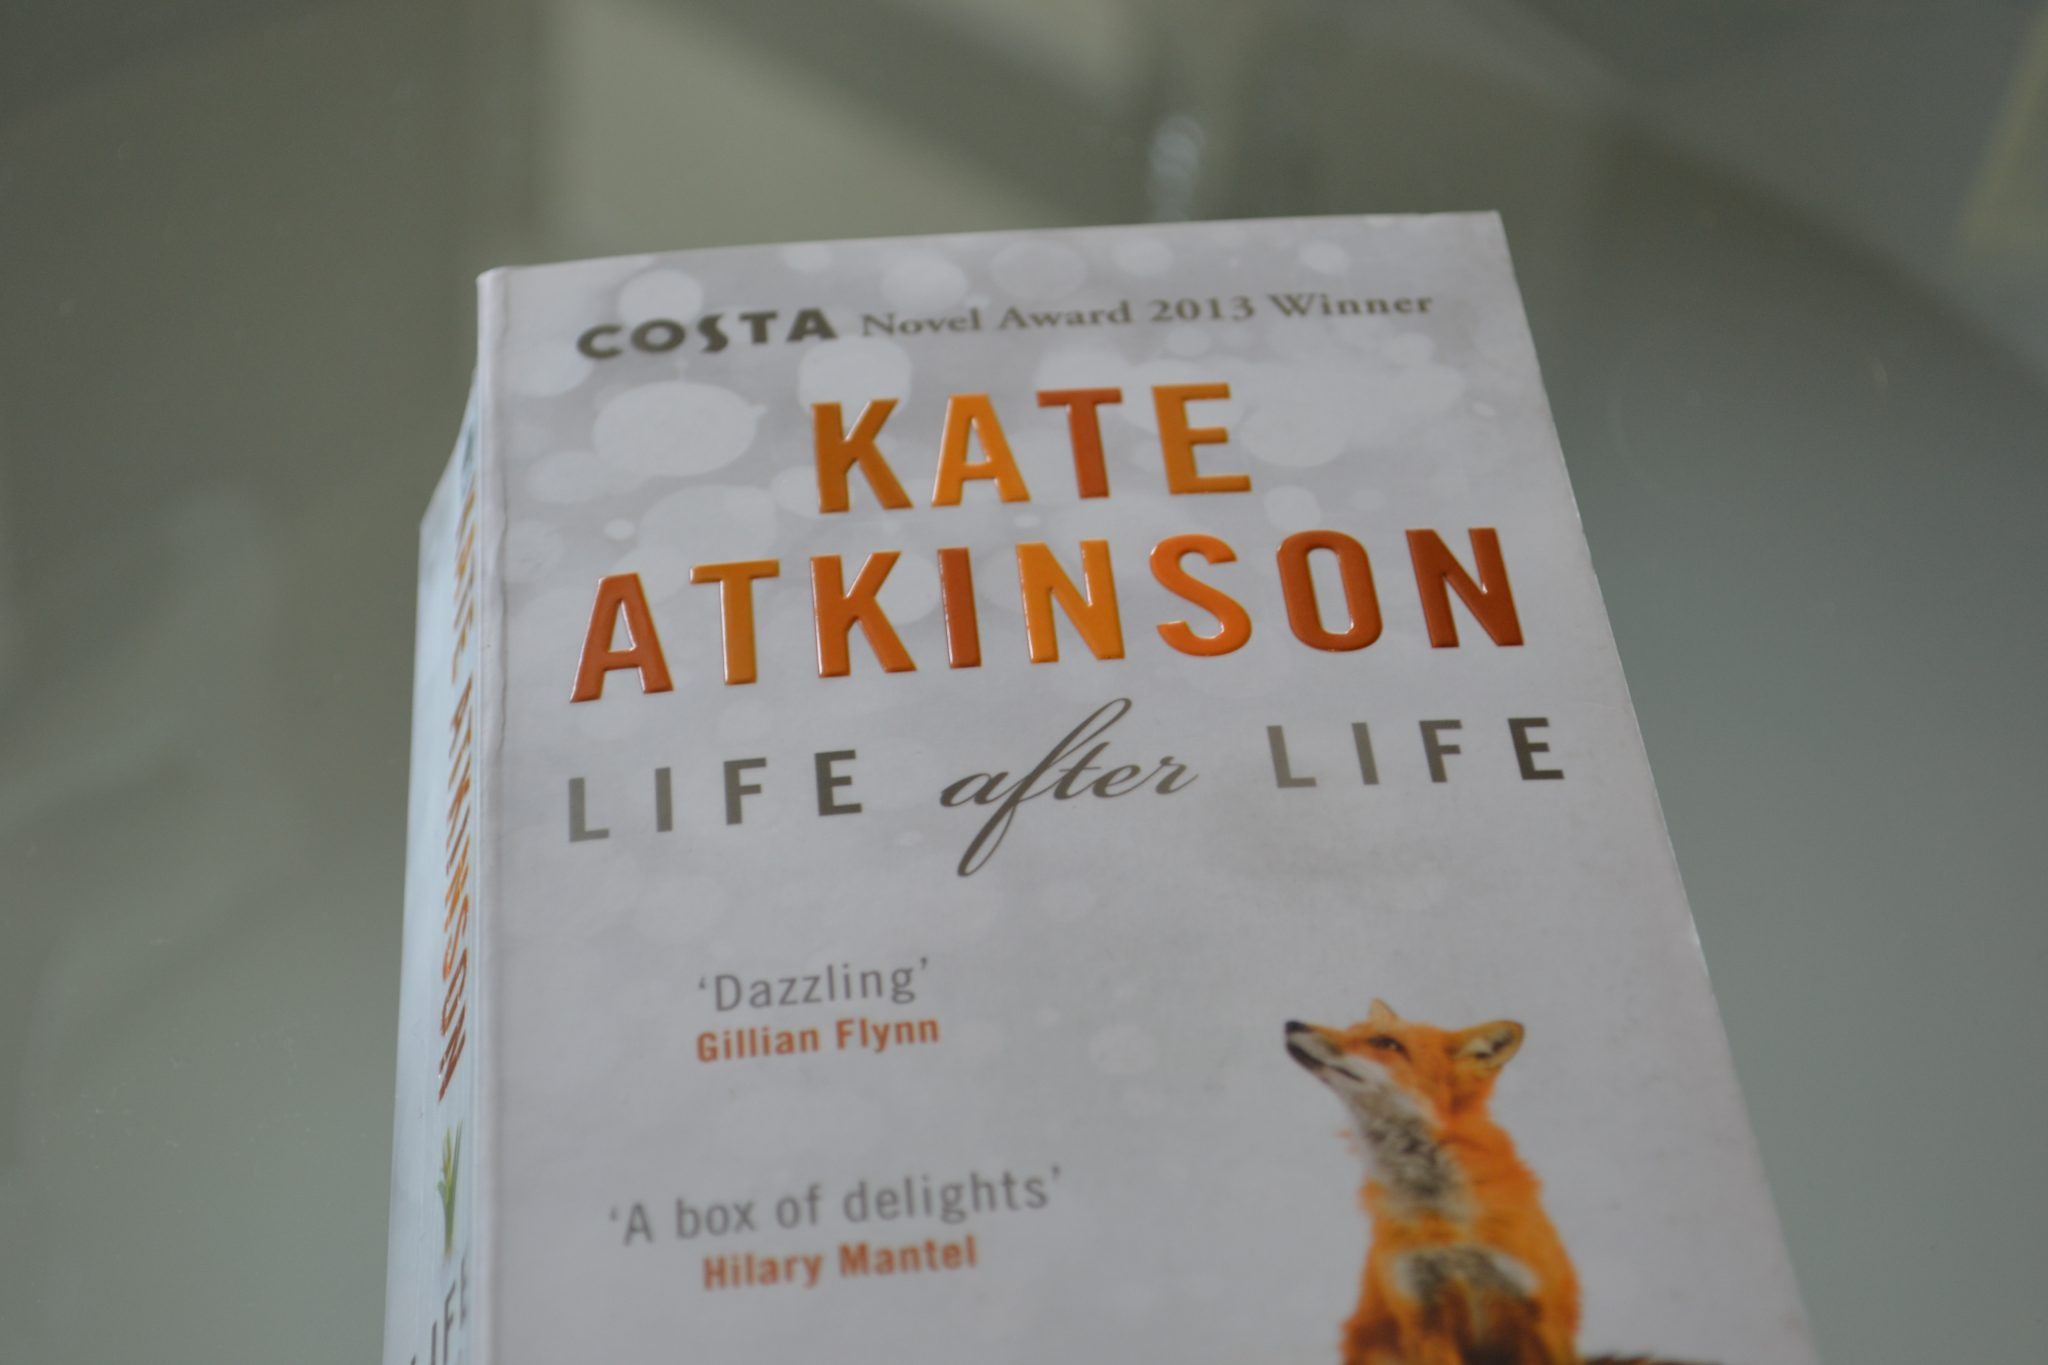 Books: Life after Life | Kate Atkinson - DSC 0159